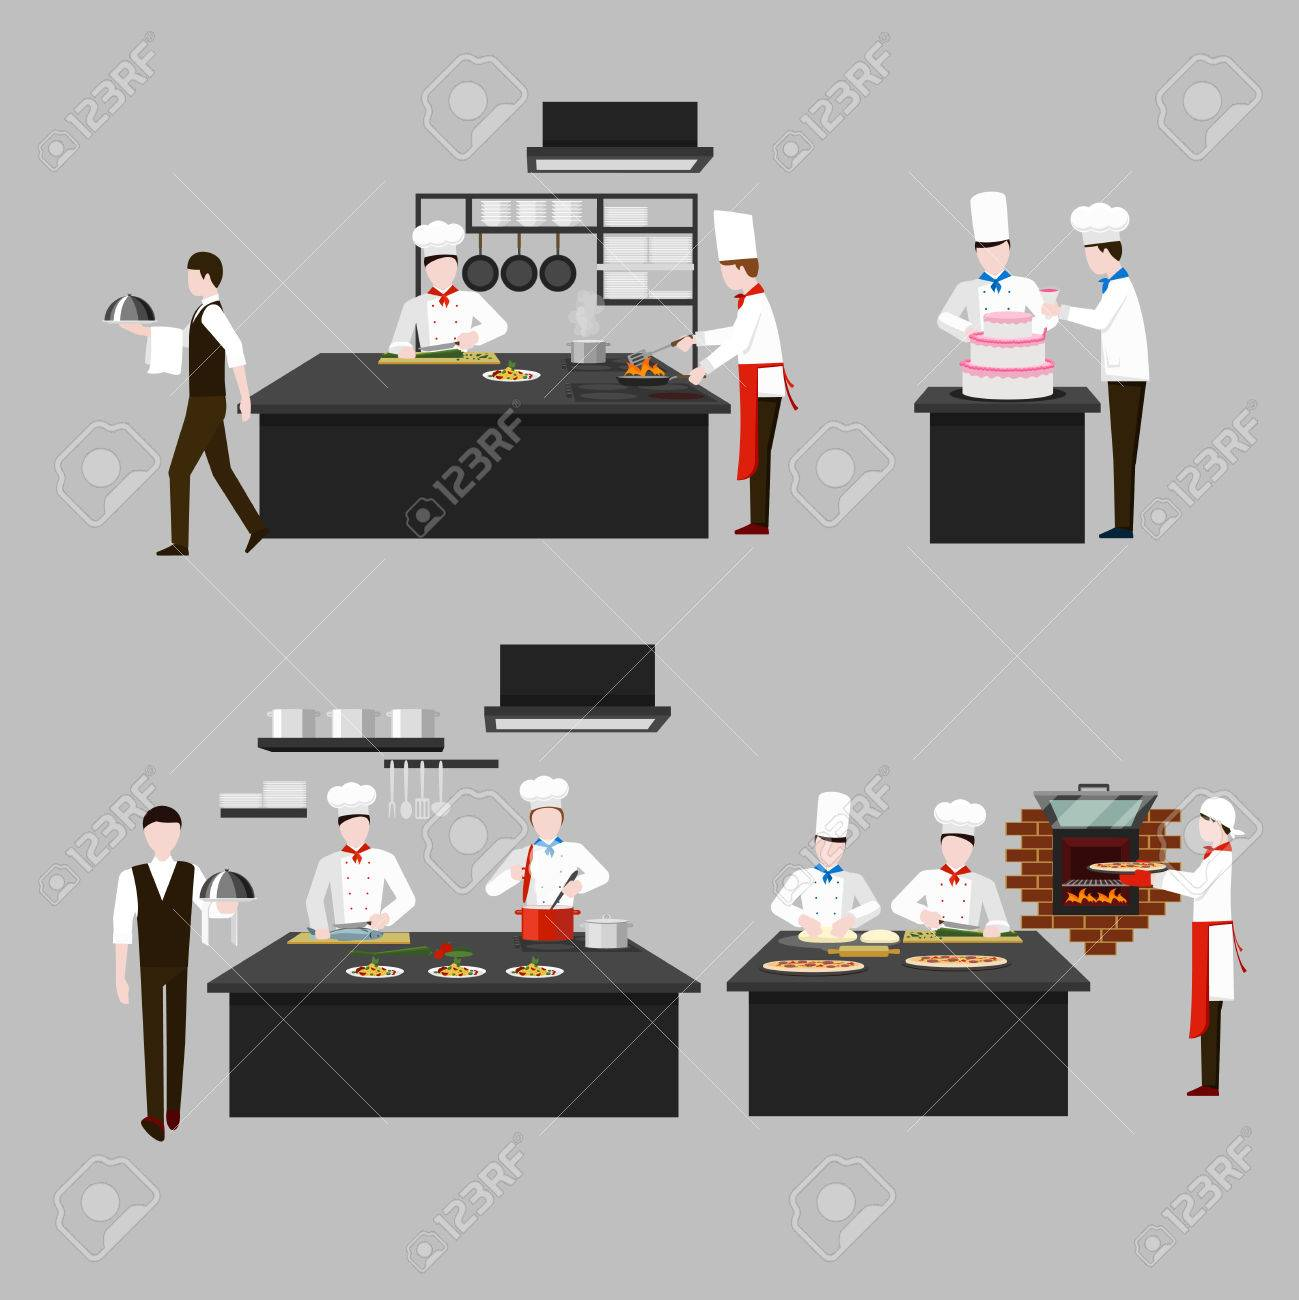 Restaurant Kitchen Illustration cooking process in restaurant kitchen. chef fry and cook